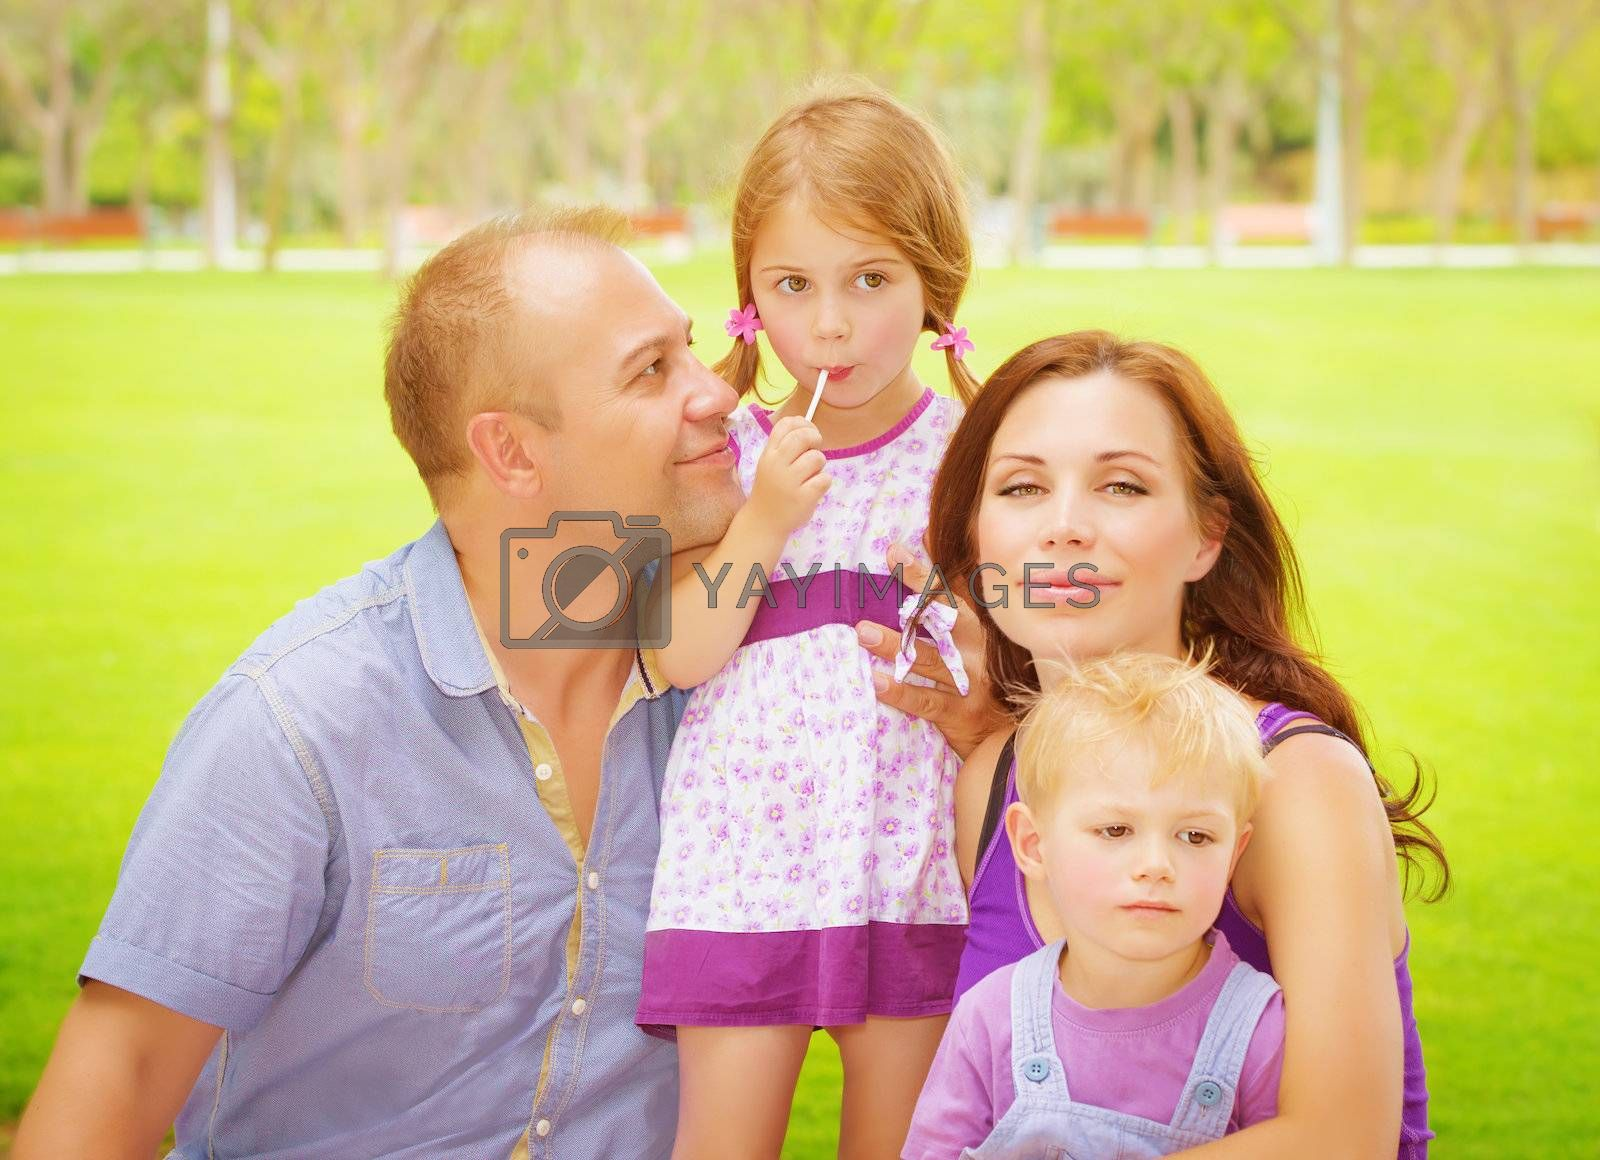 Portrait of happy family having fun outdoors, young parents with two cute kids in spring park, spending time together, love concept